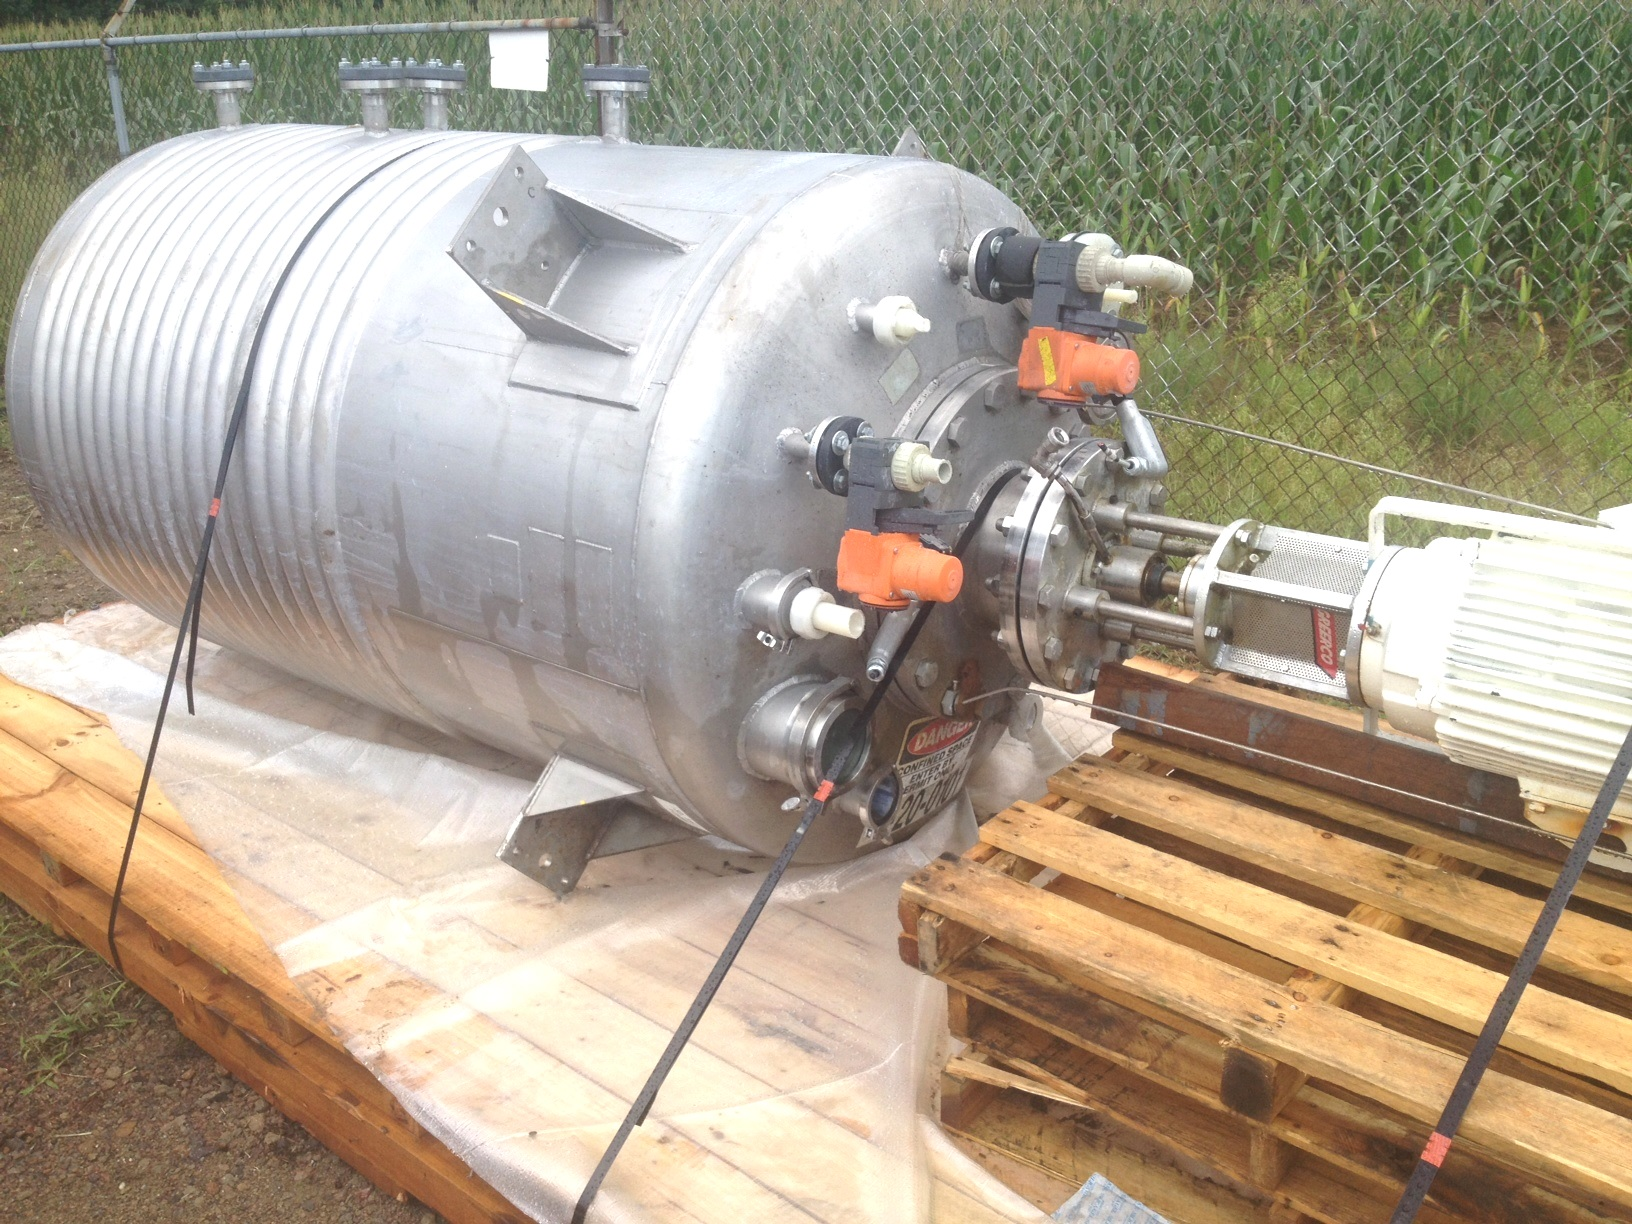 (2) EACH, 600 Gallon LEE 316L Stainless Reactor / Kettle with 1/2 Pipe jacket and High Shear Greerco Homogenizer / Disperser. Polished Internal. Rated 15/FV @ 100 Deg.F. Internal. Jacket rated 100 PSI @ 338 Deg.F. Has Greerco model 4HRFM 96,  15 HP, 230/460 volt, 3525 RPM High Shear Mixer / Disperser. 2.5